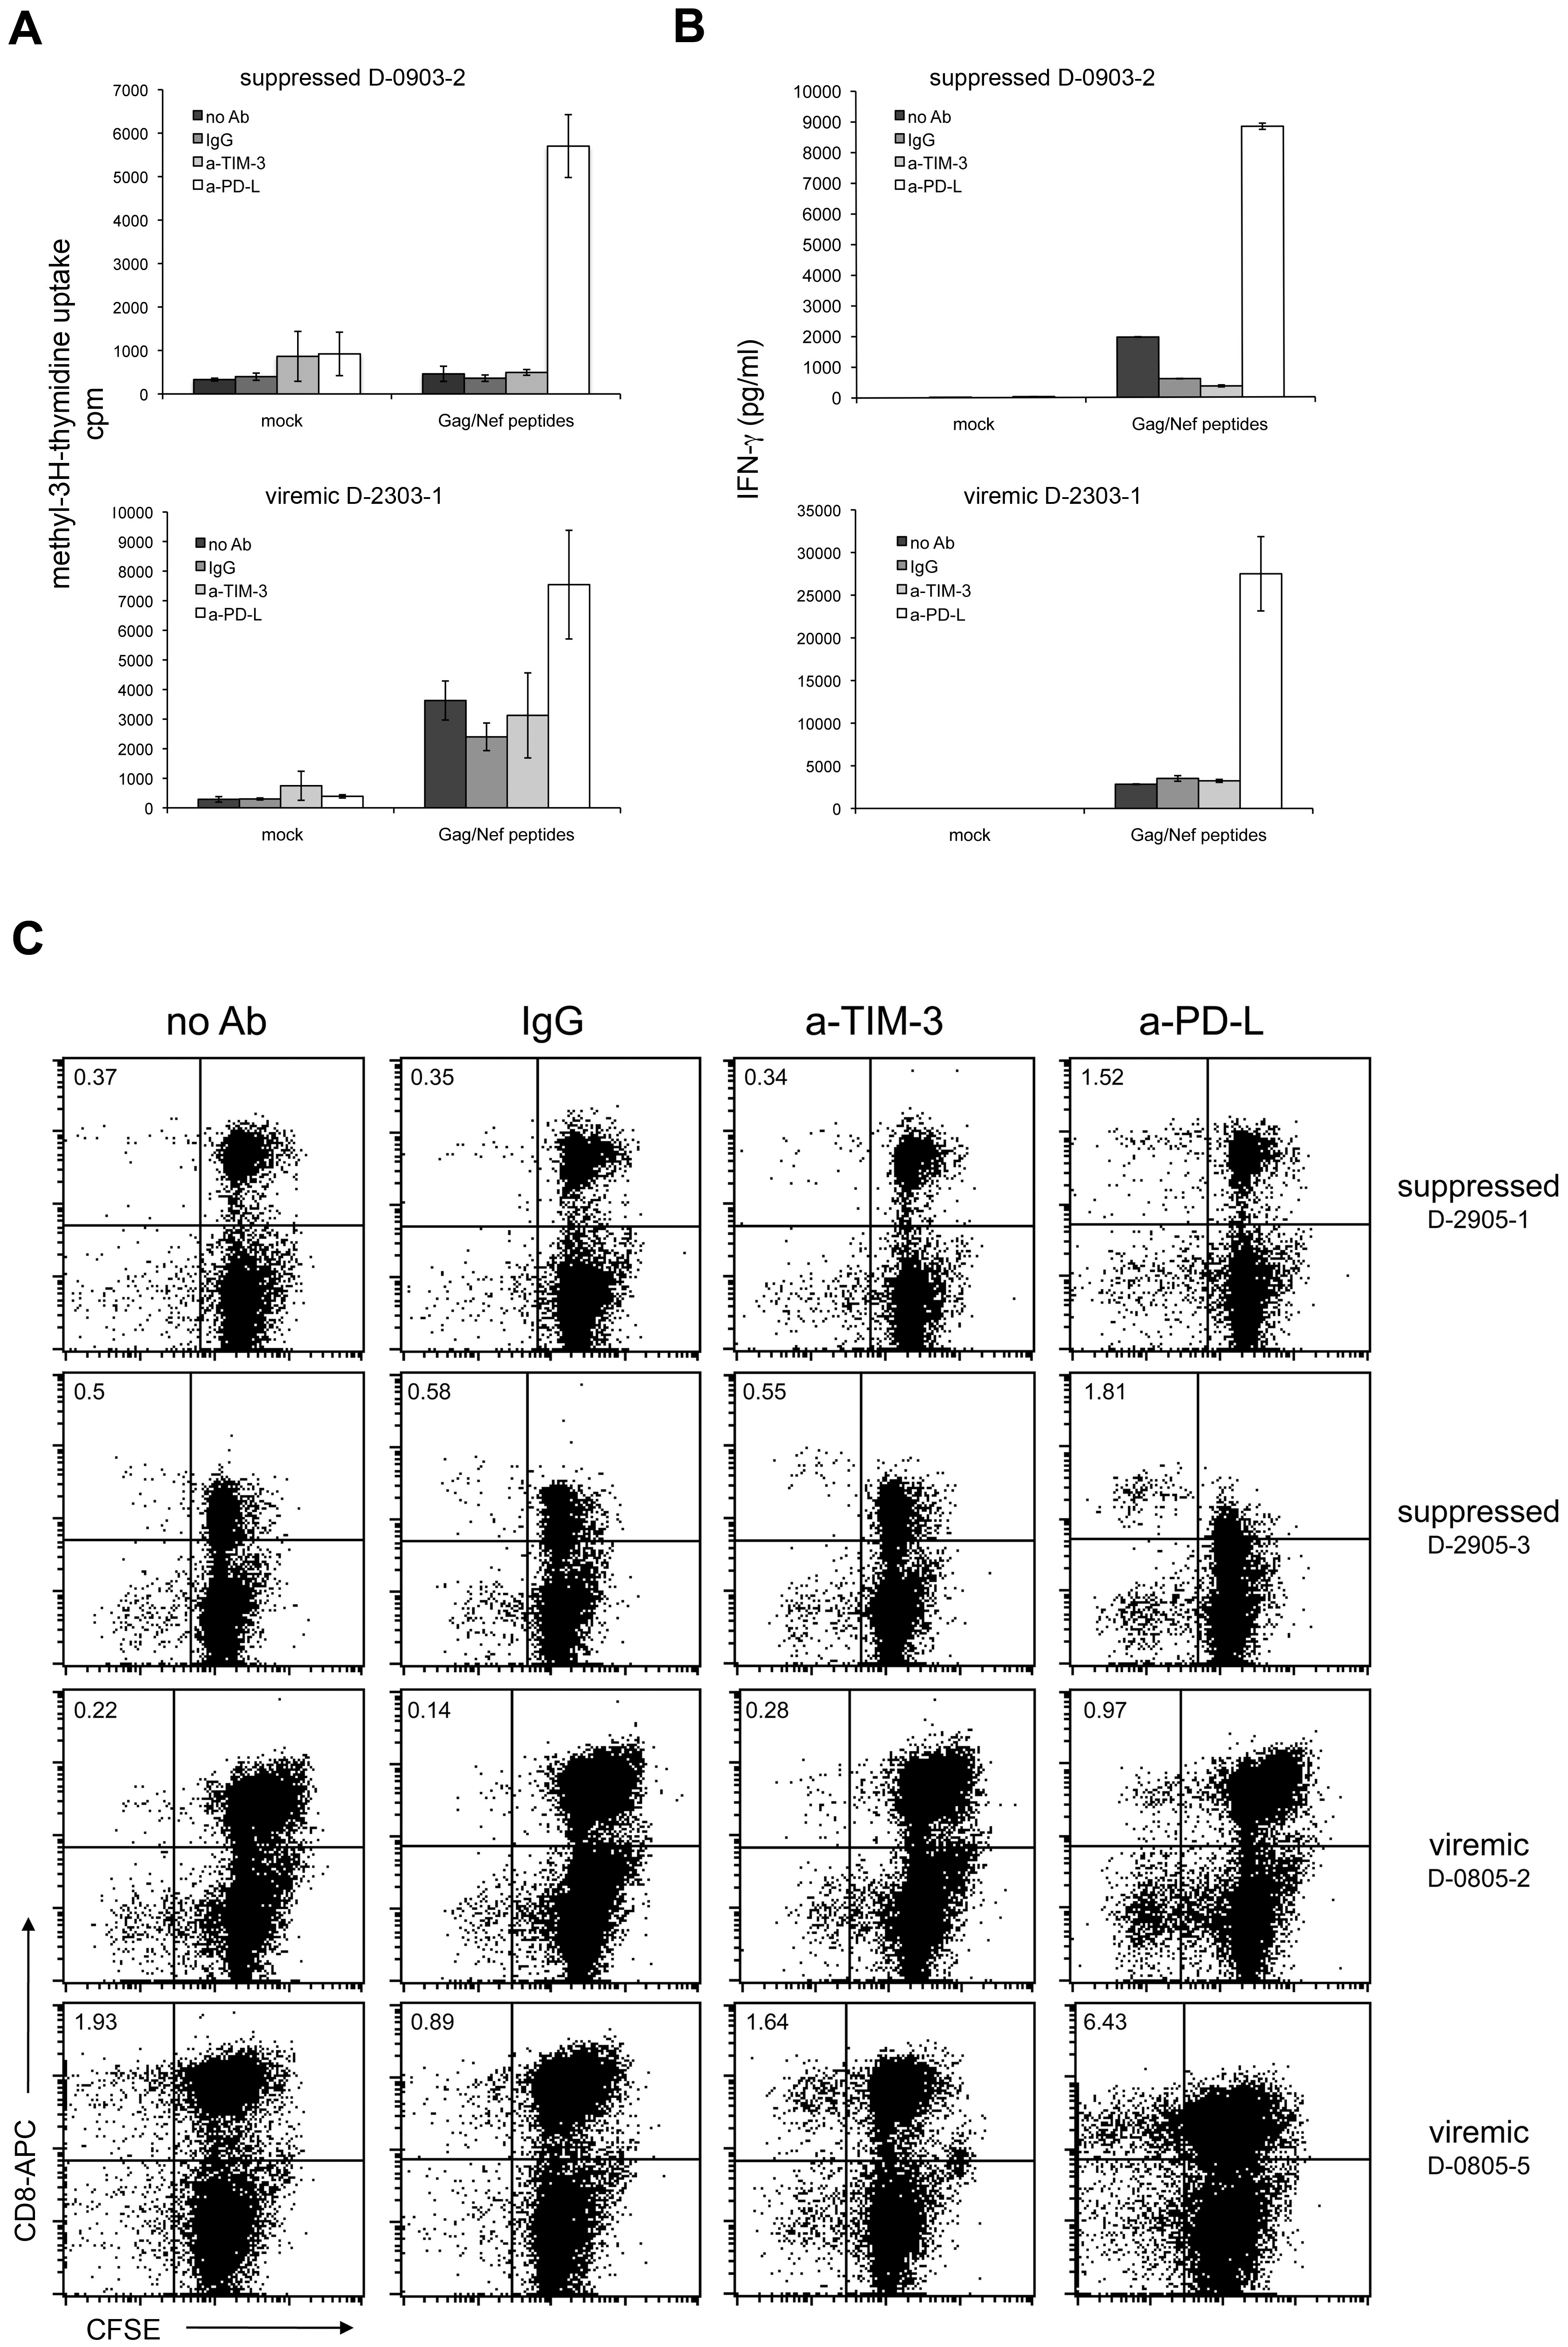 TIM-3 antibodies do not revert T cell exhaustion.